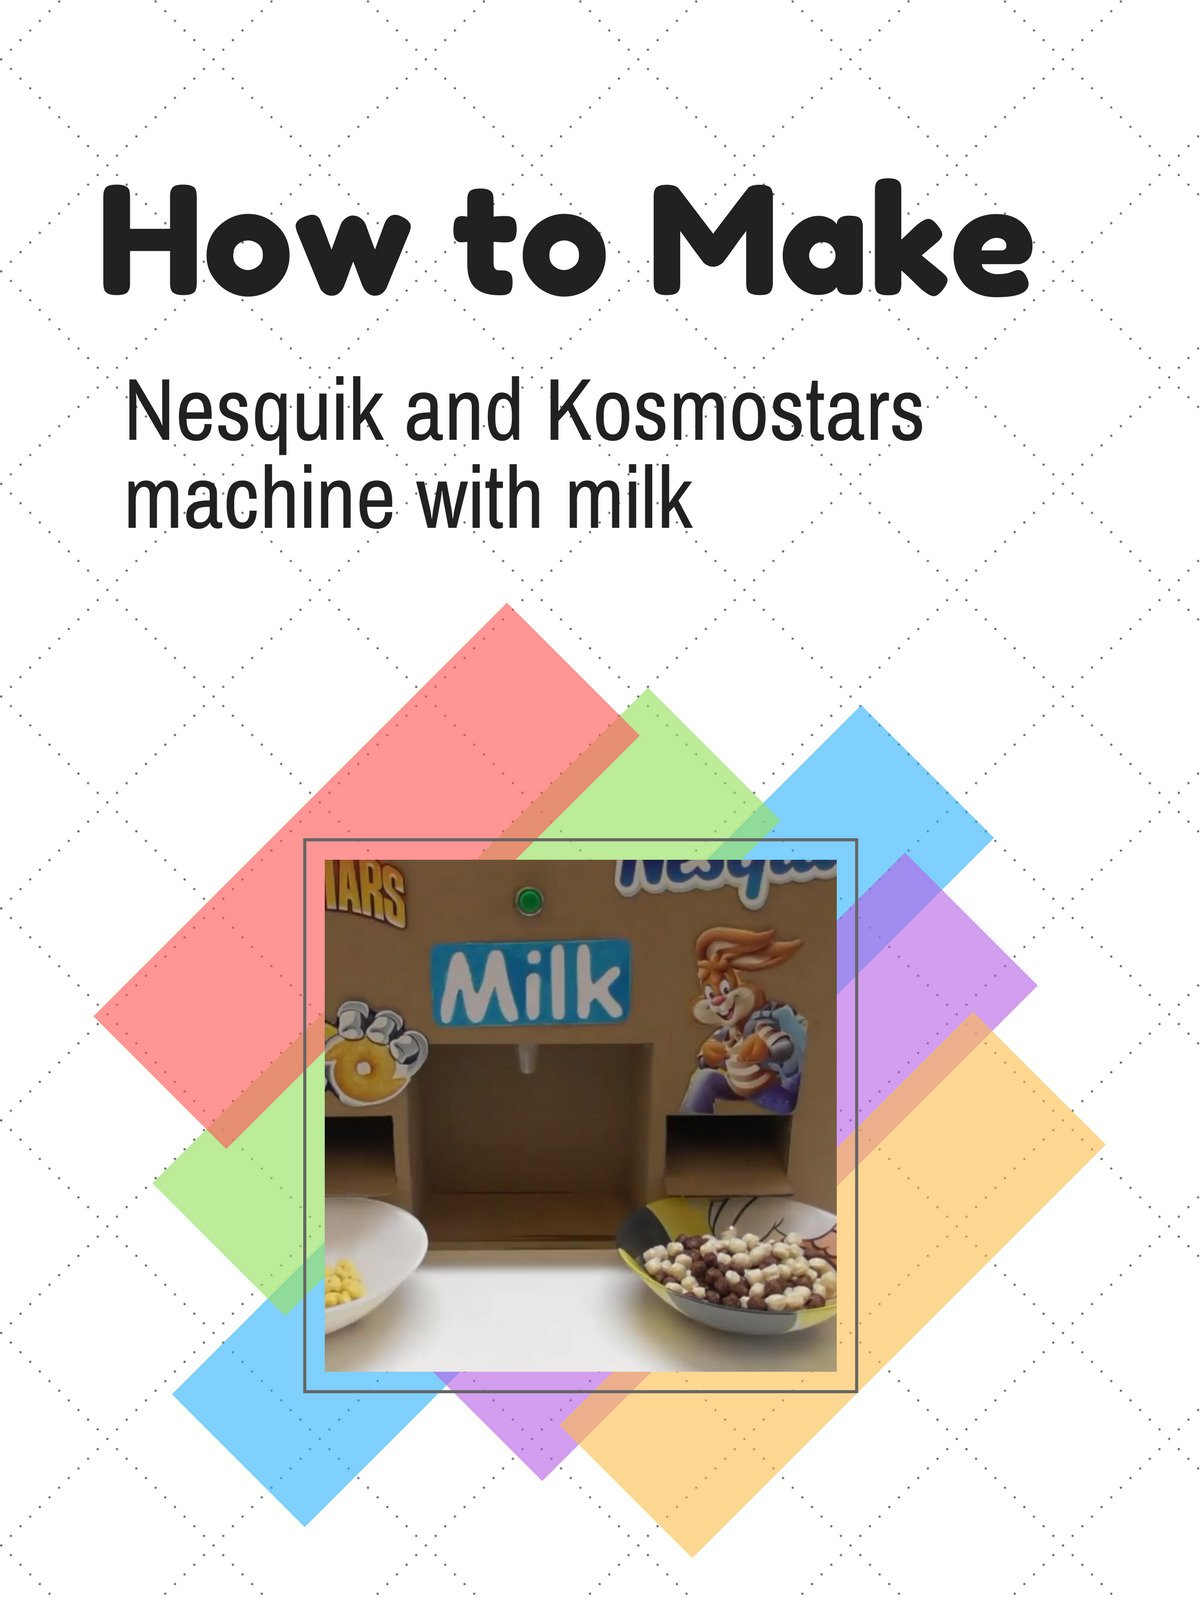 How to make Nesquik and Kosmostars machine with milk